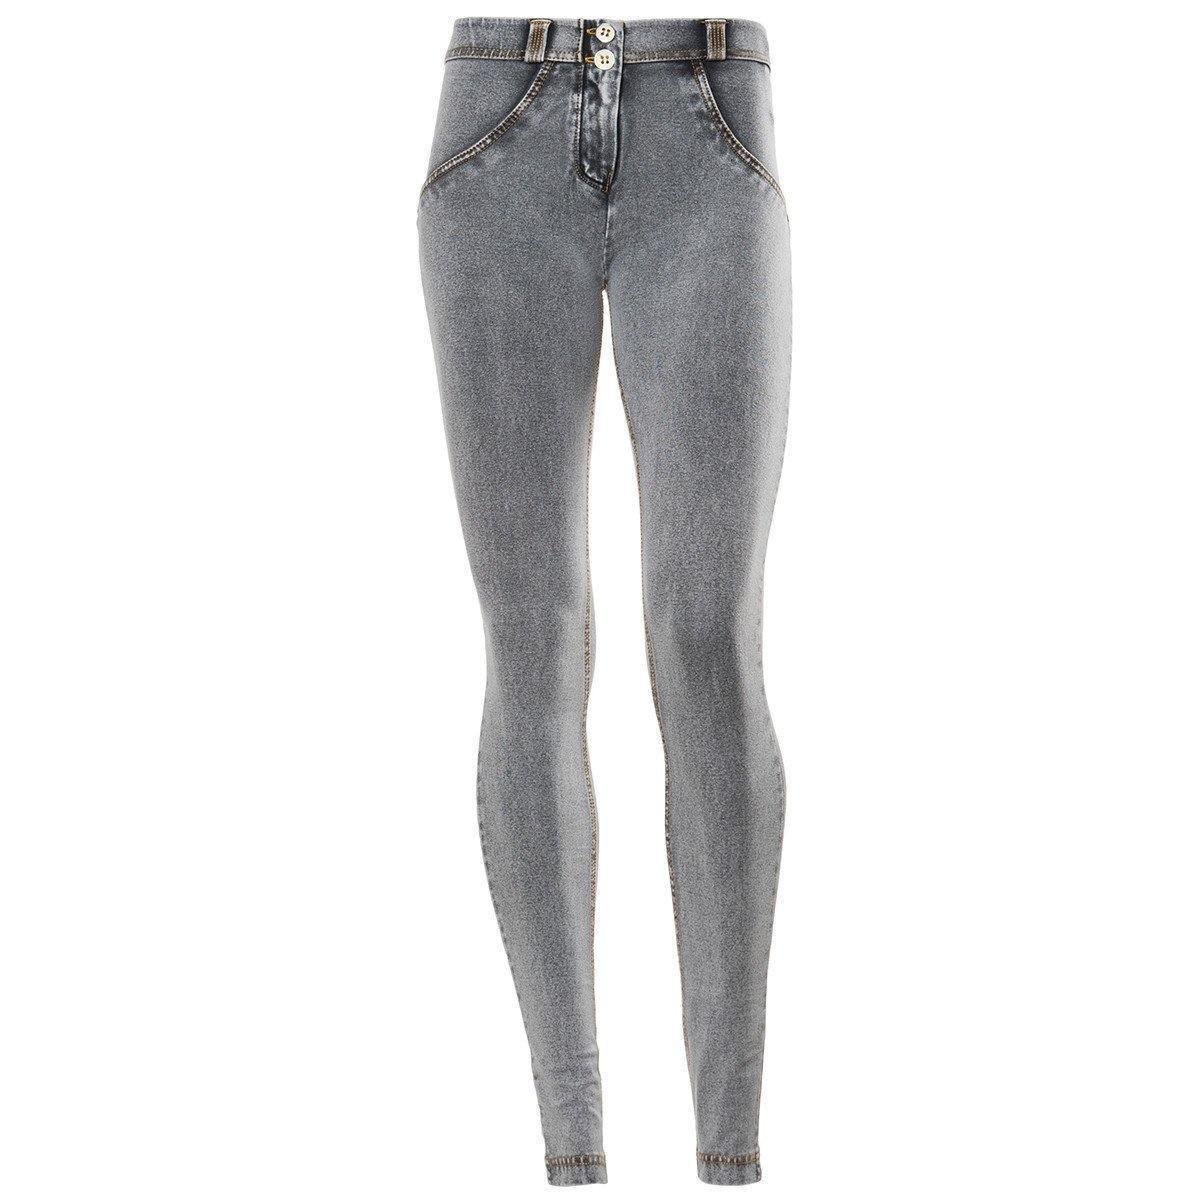 WR.UP® Shaping Jeans Skinny Mid Ash Grey + Yellow Stitching